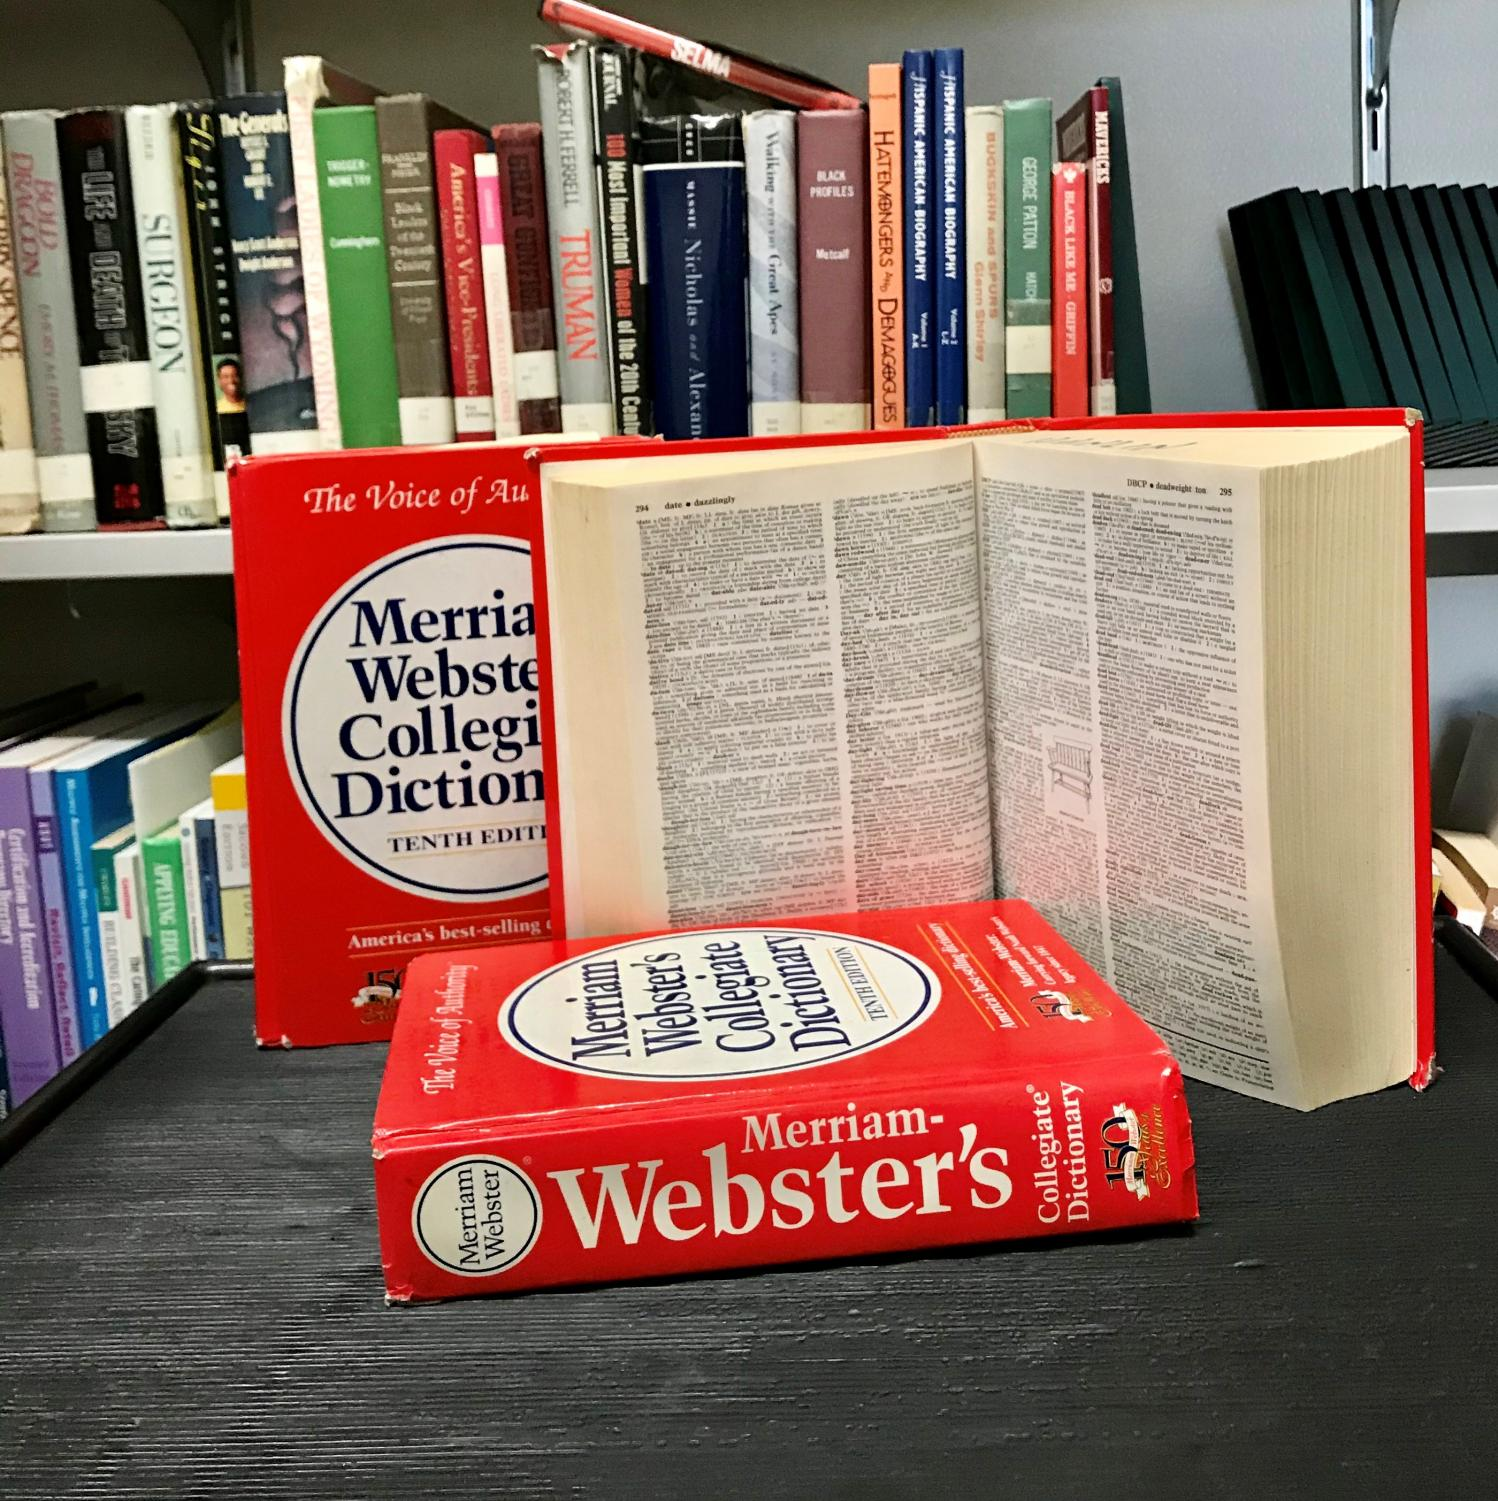 The newest addition of the Webster's dictionary included slang words.